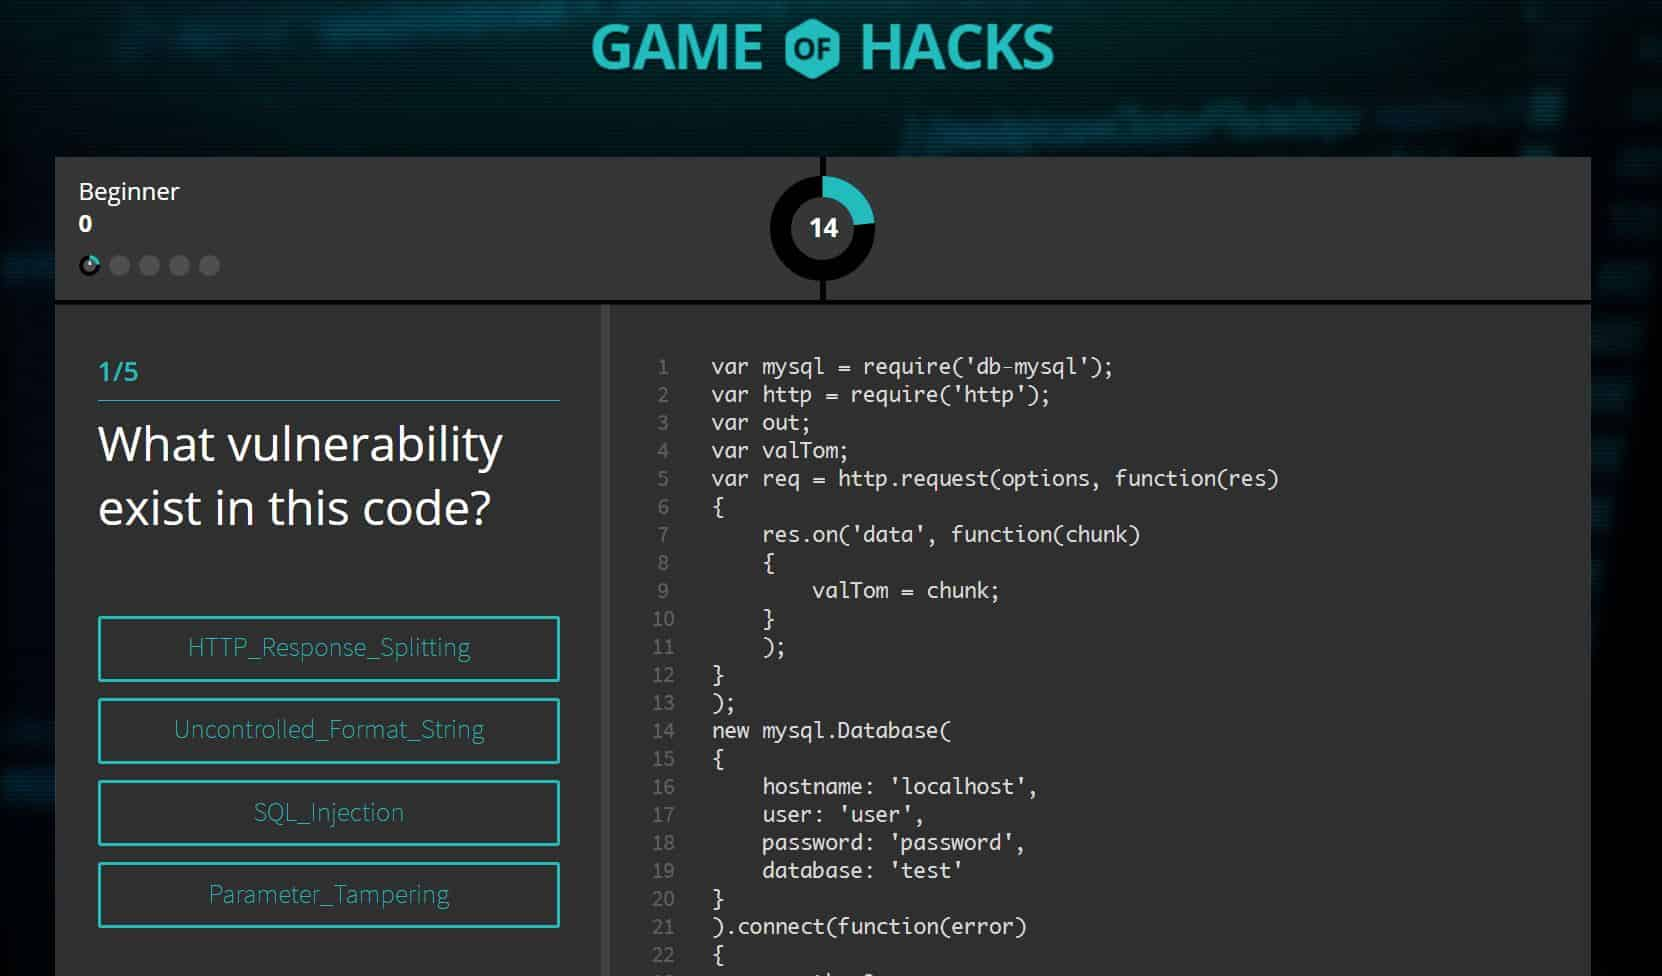 game-of-hacks-content